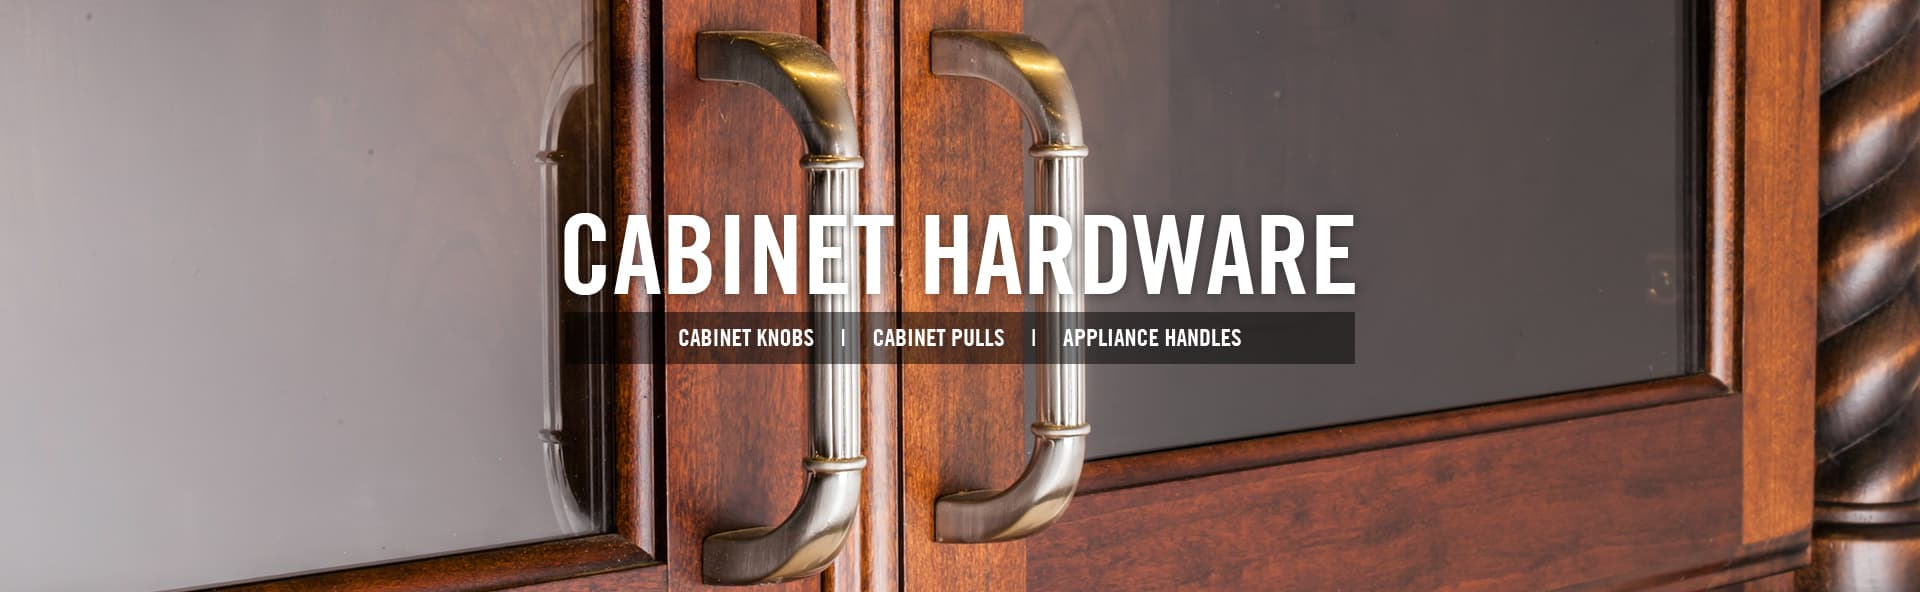 Cabinet Hardware Knobs Pulls Handles